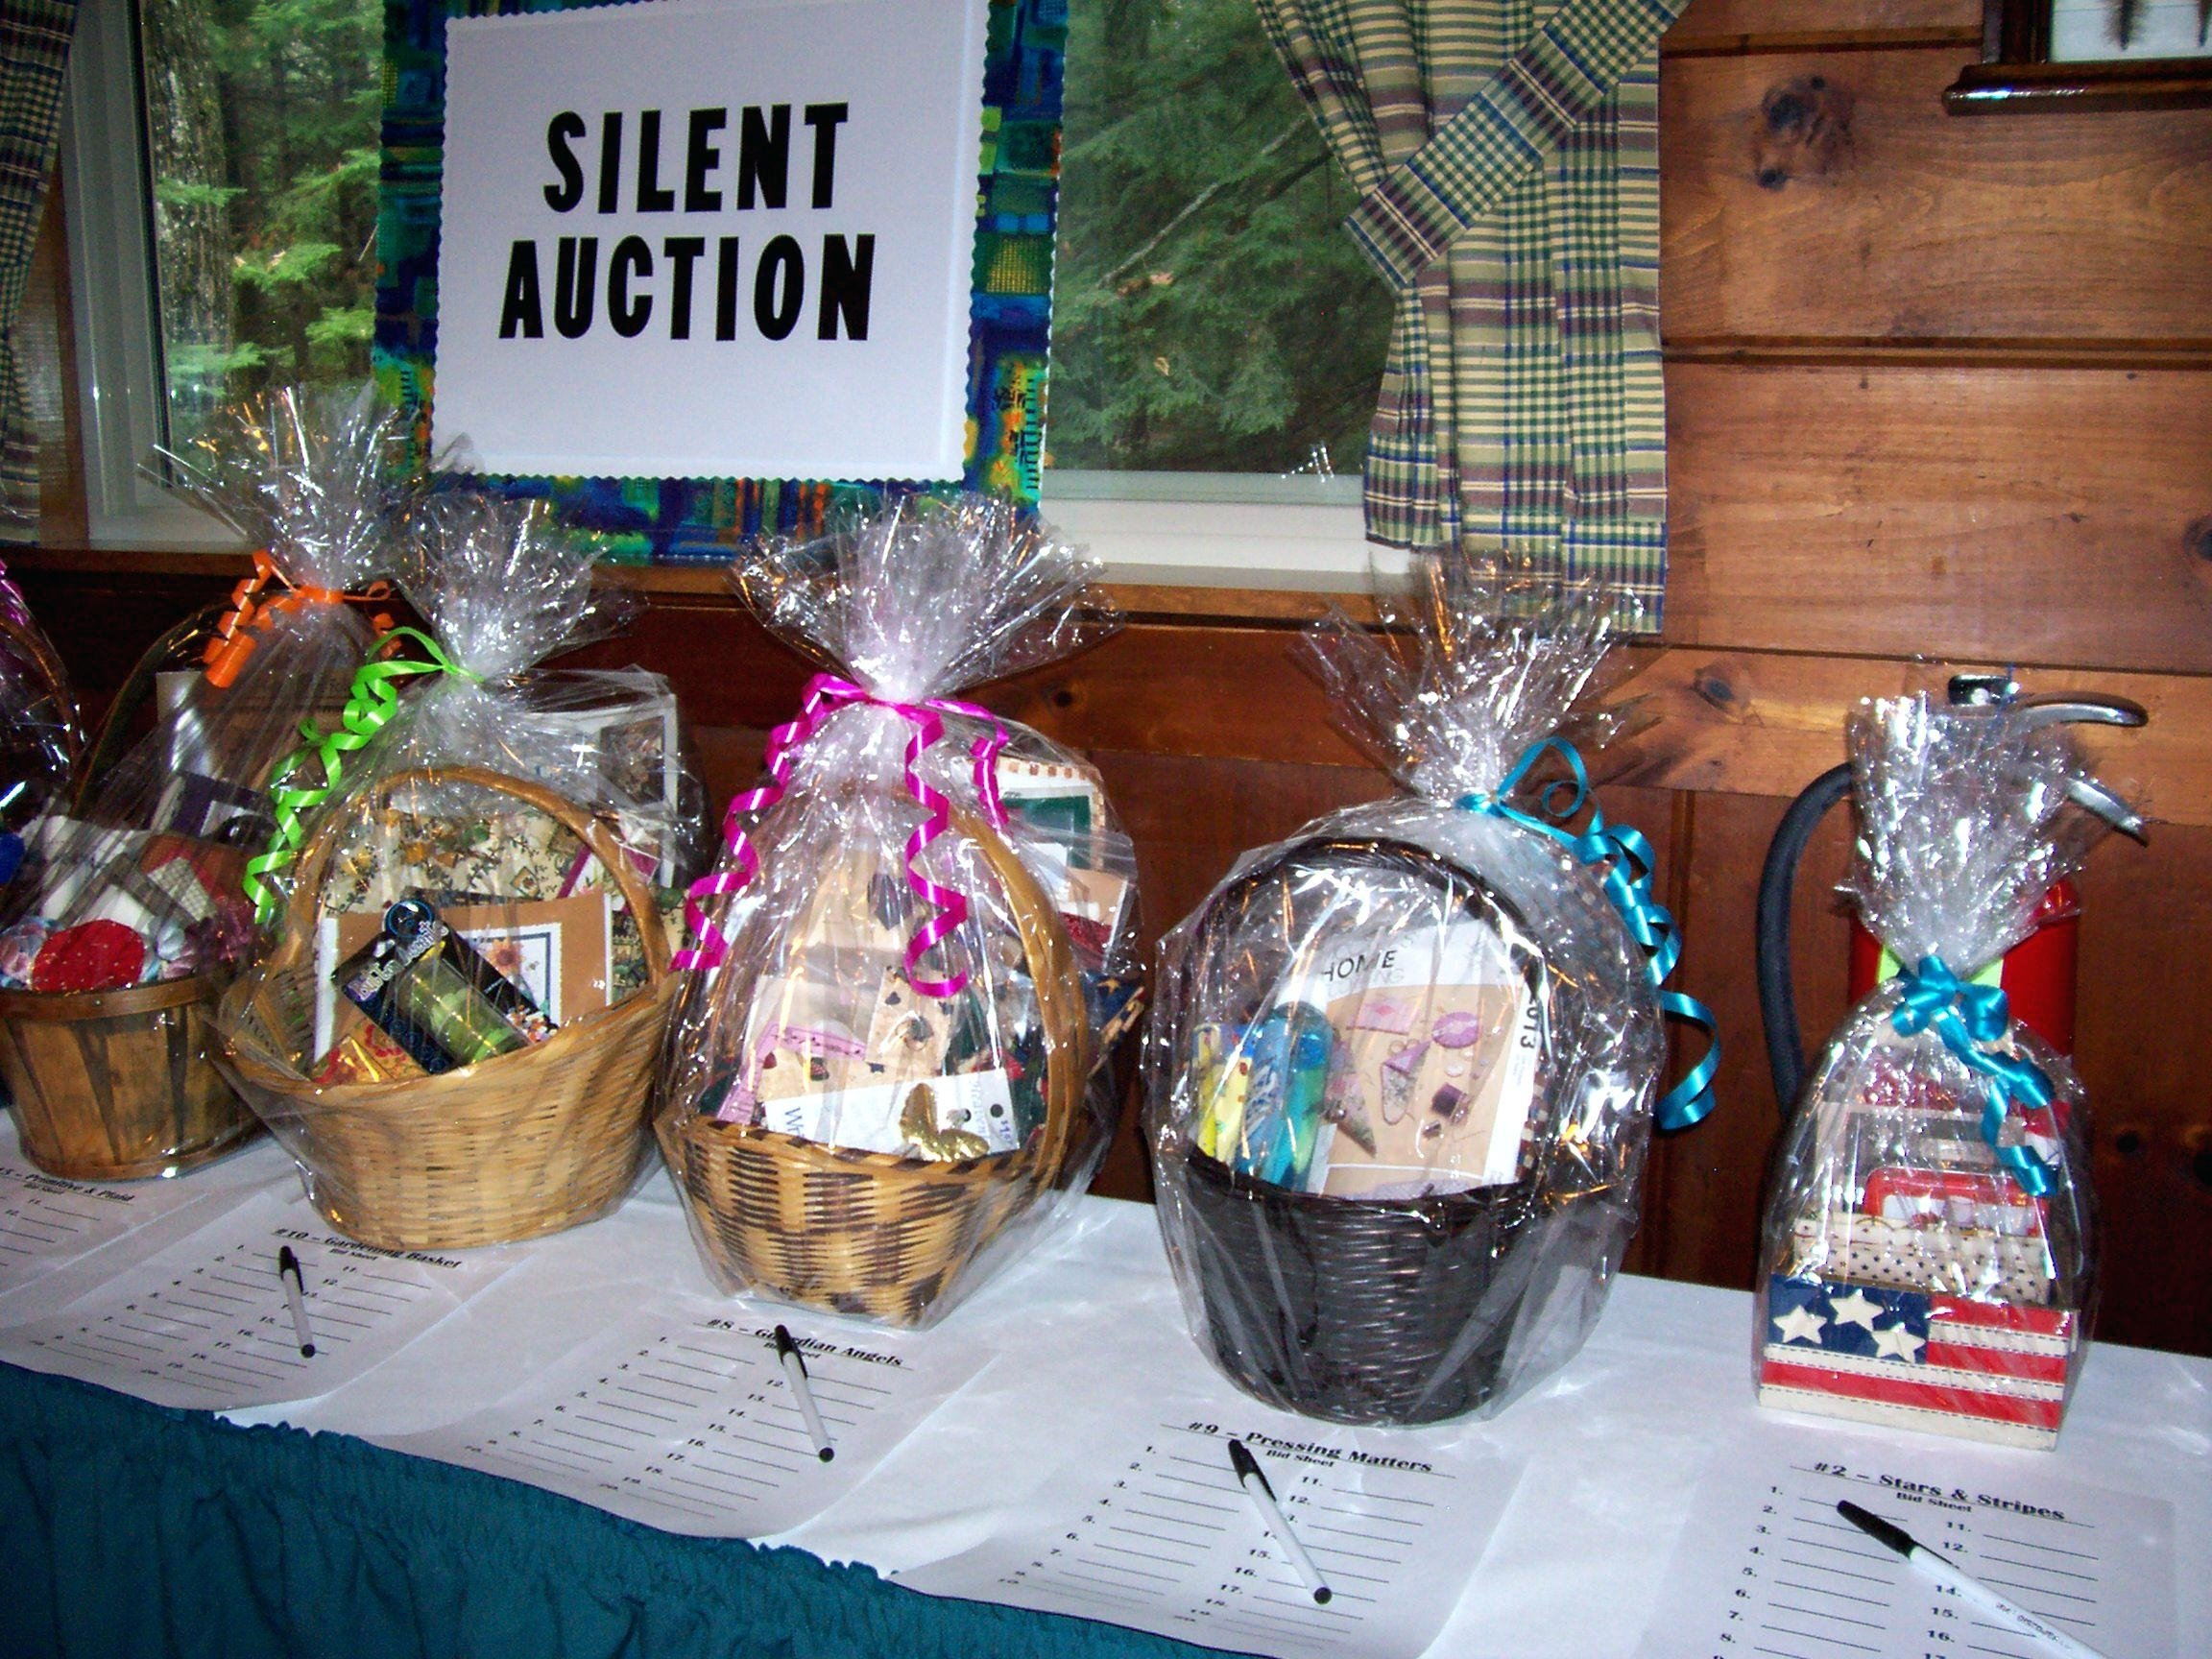 silent auction gift basket ideas n school theme fundraiser